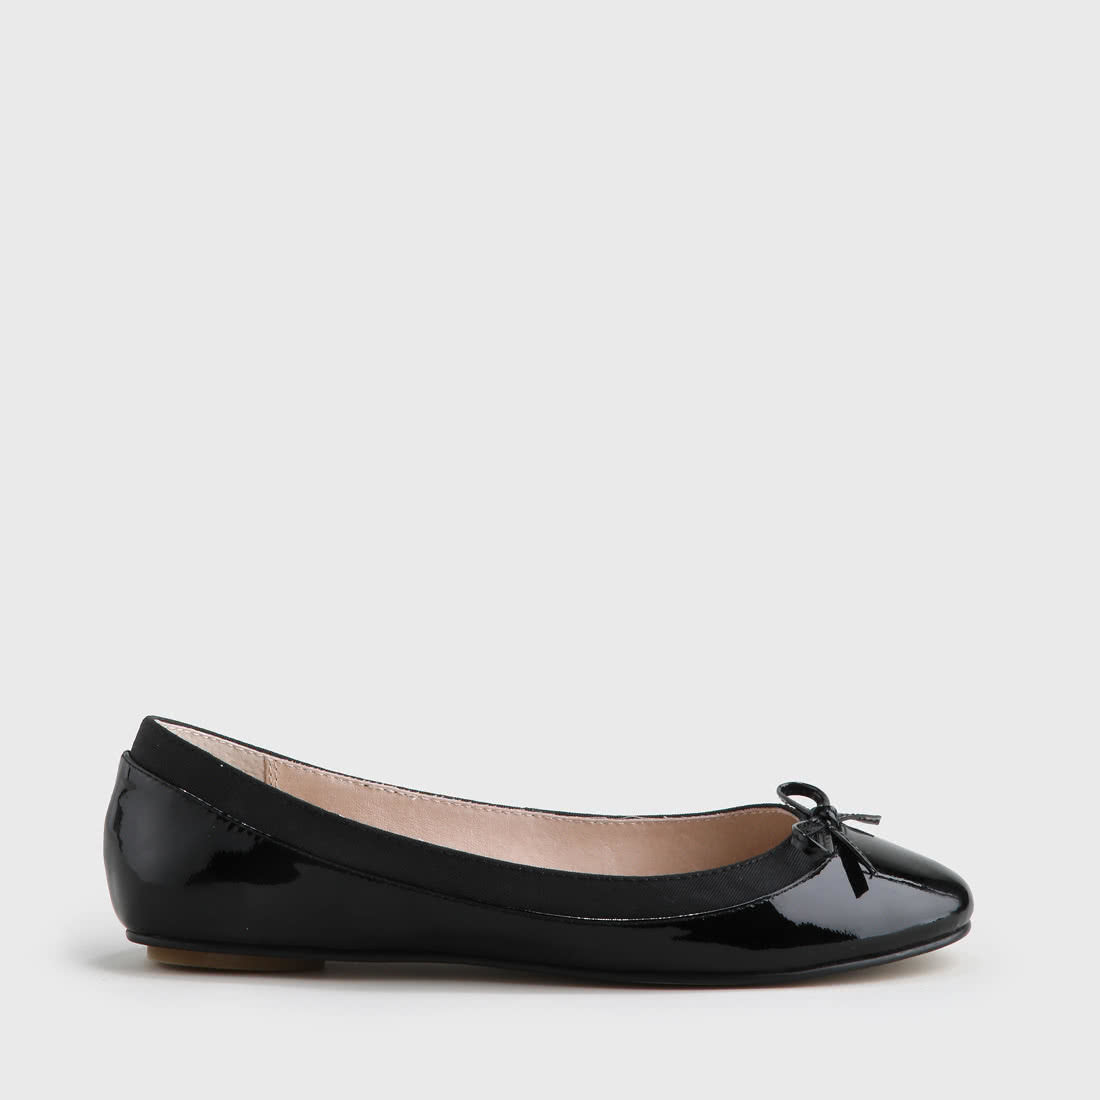 Annelie ballet flats black patent leather buy online in BUFFALO ... 79483285a